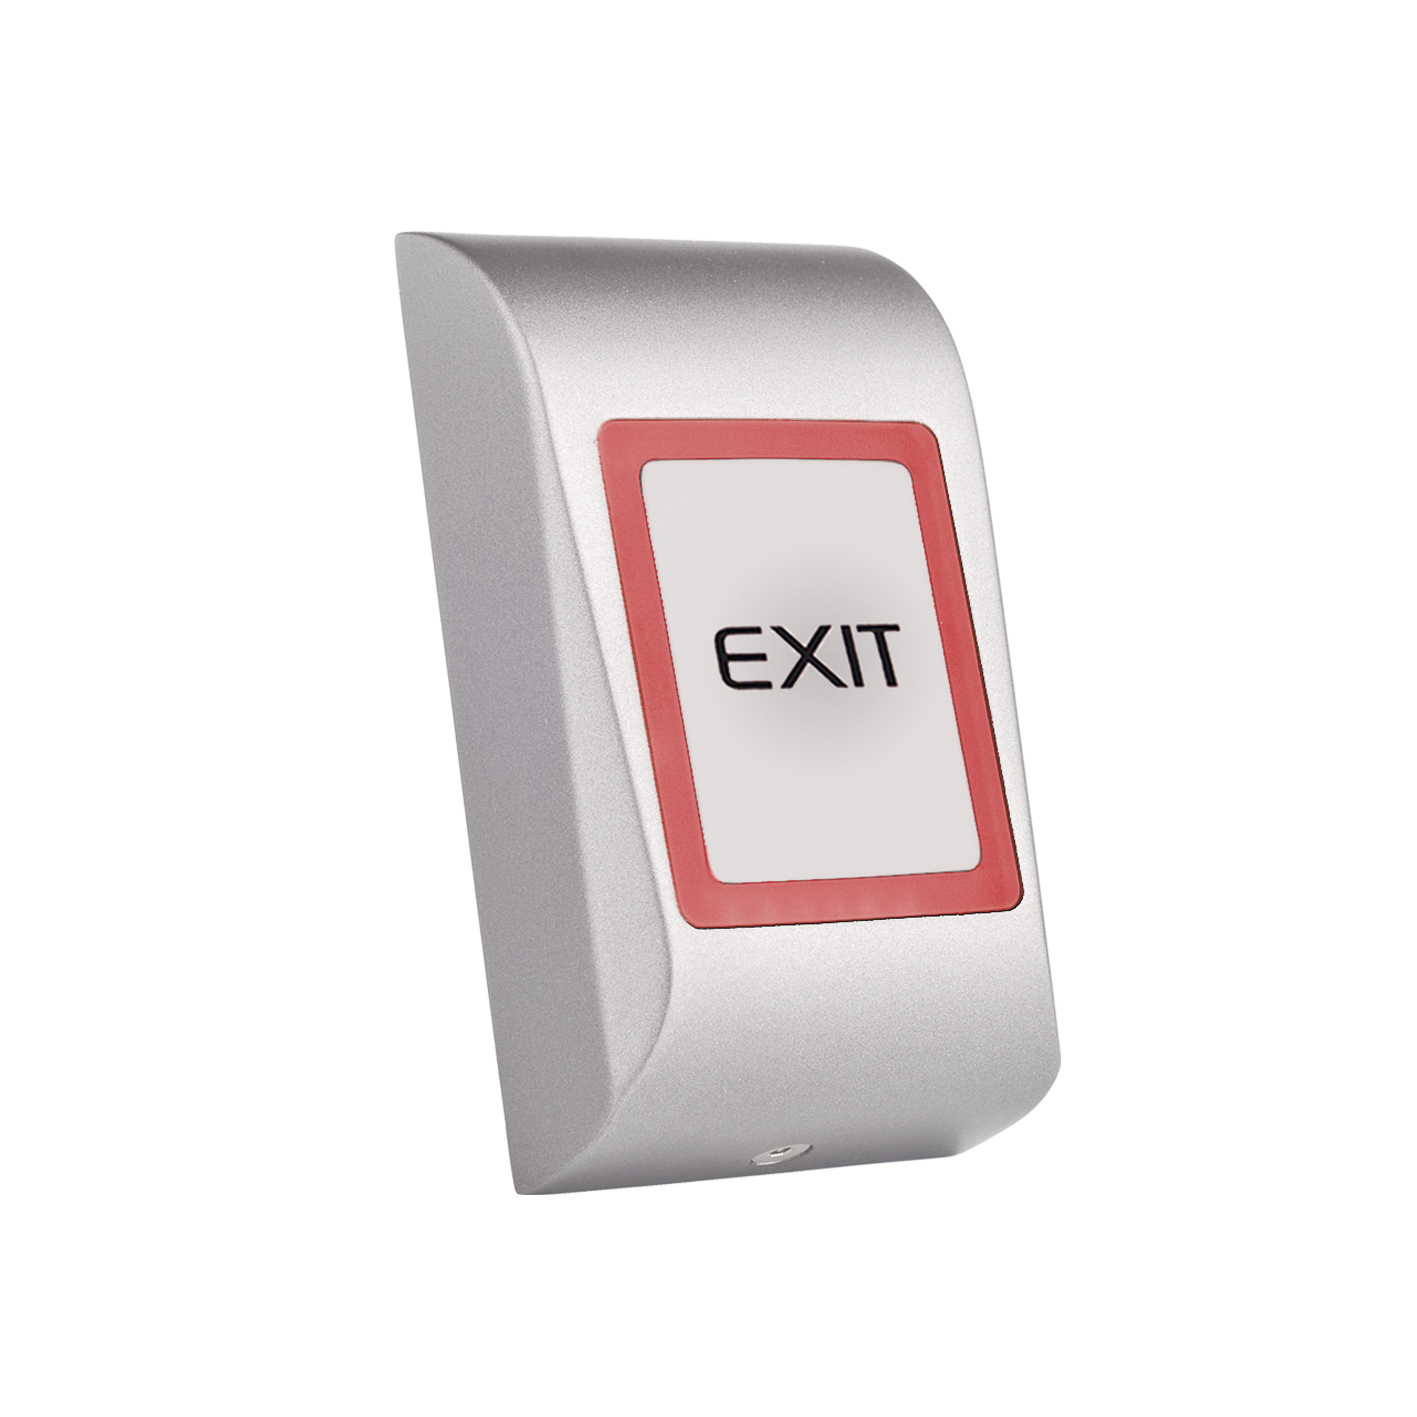 Standalone Touch to Exit Button (surface)